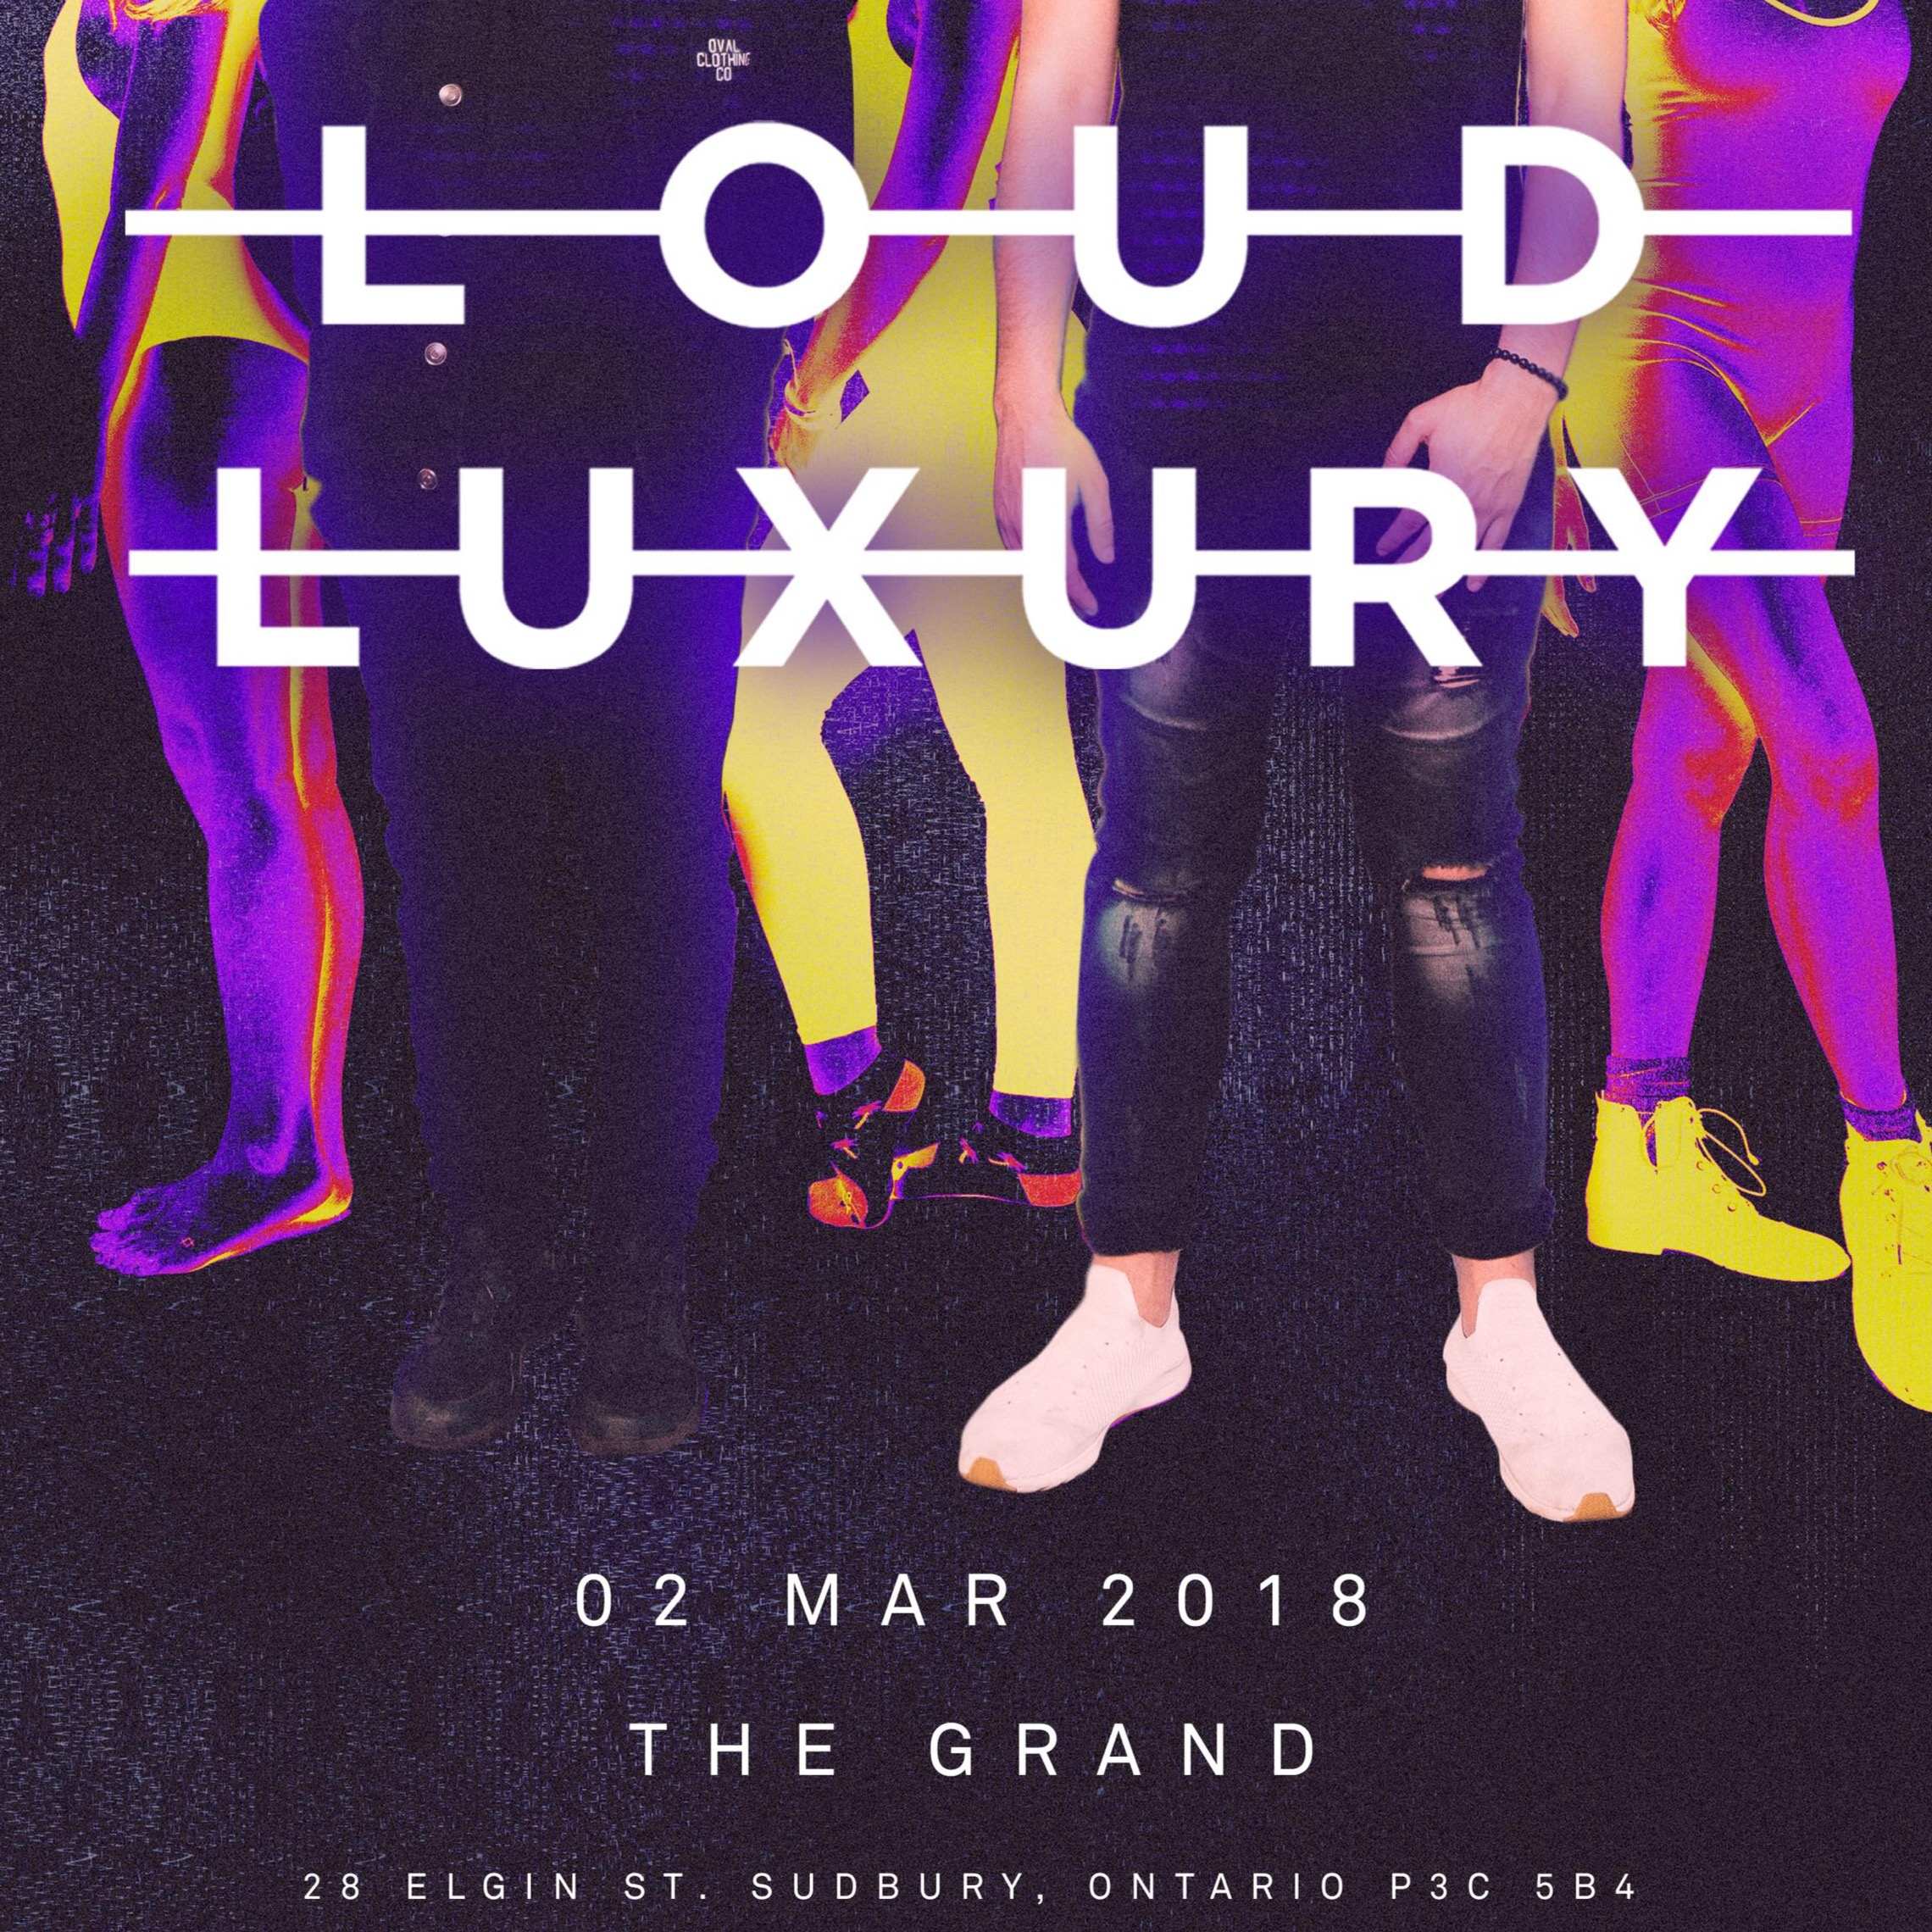 Loud Luxury @ The Grand Body Heat Tour